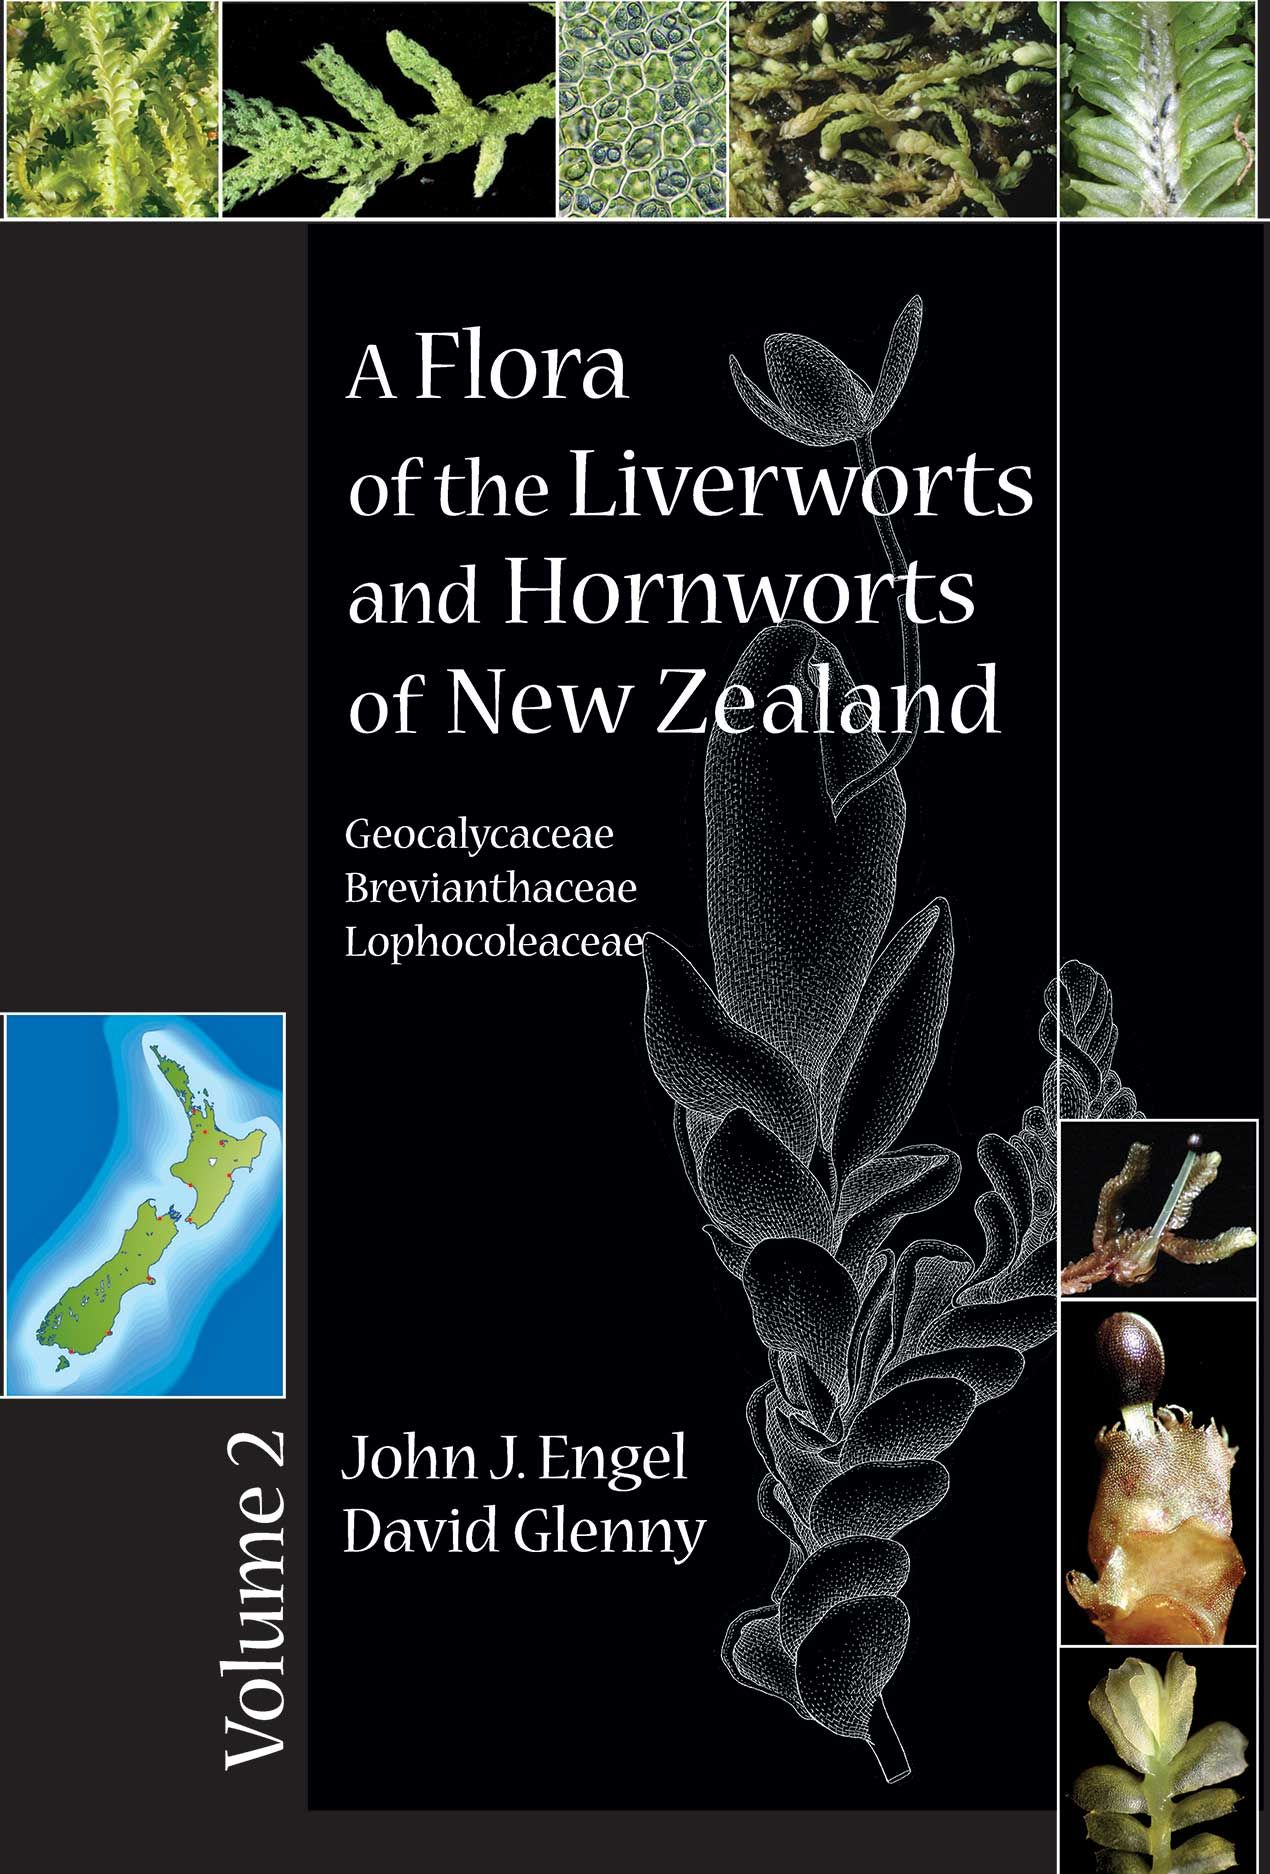 A Flora of the Liverworts and Hornworts of New Zealand